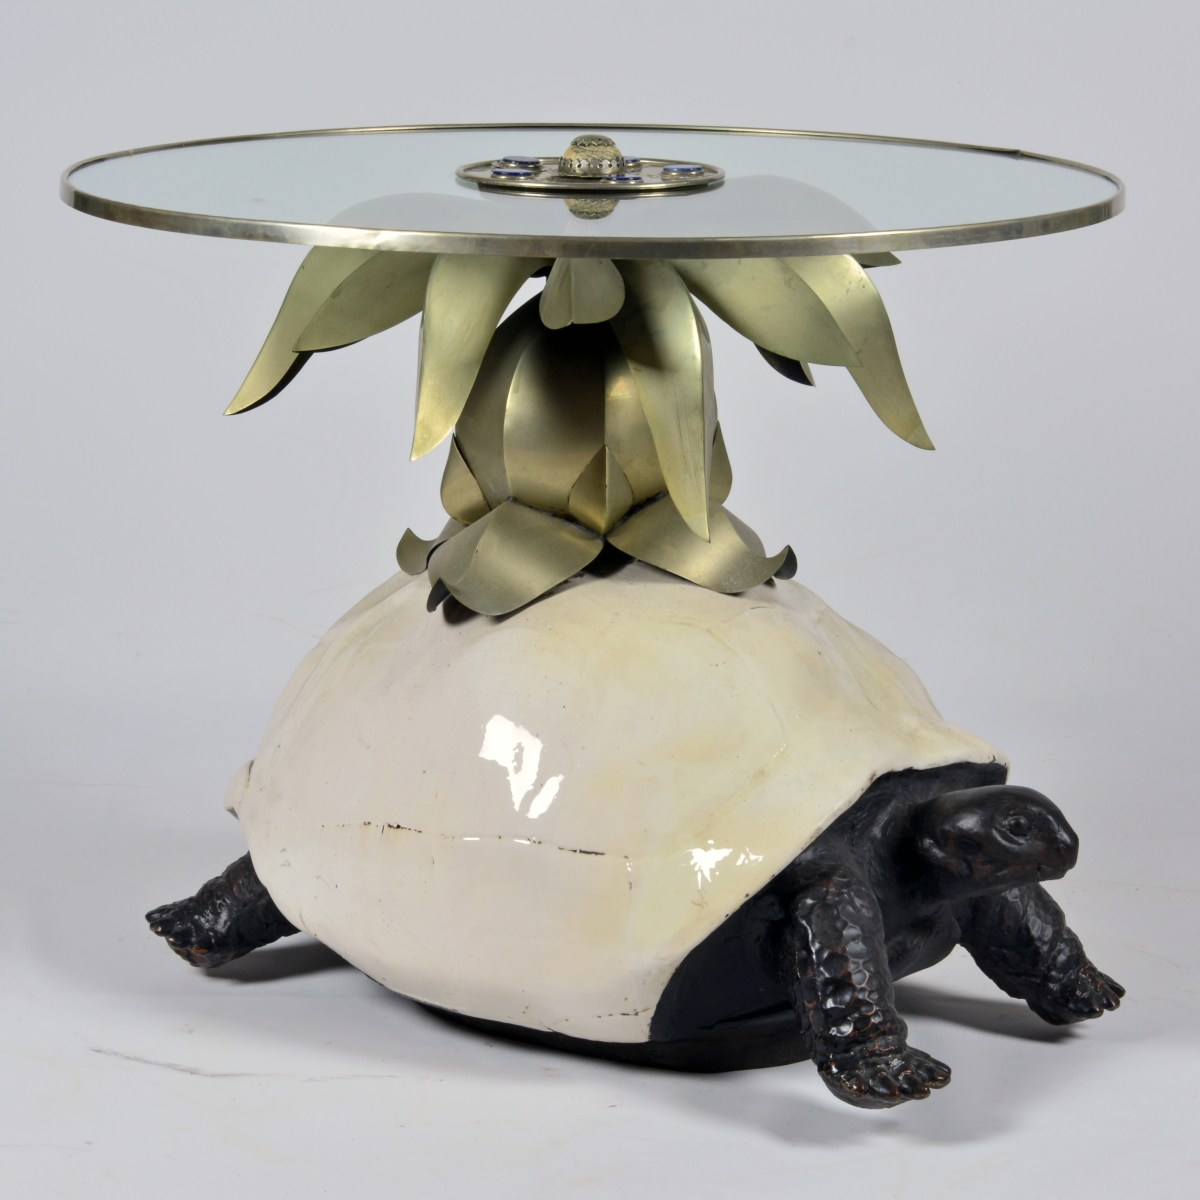 A tole peinte and composition anthony redmile turtle coffee table a tole peinte and composition anthony redmile turtle coffee table decorative arts fine antiques dafa geotapseo Gallery